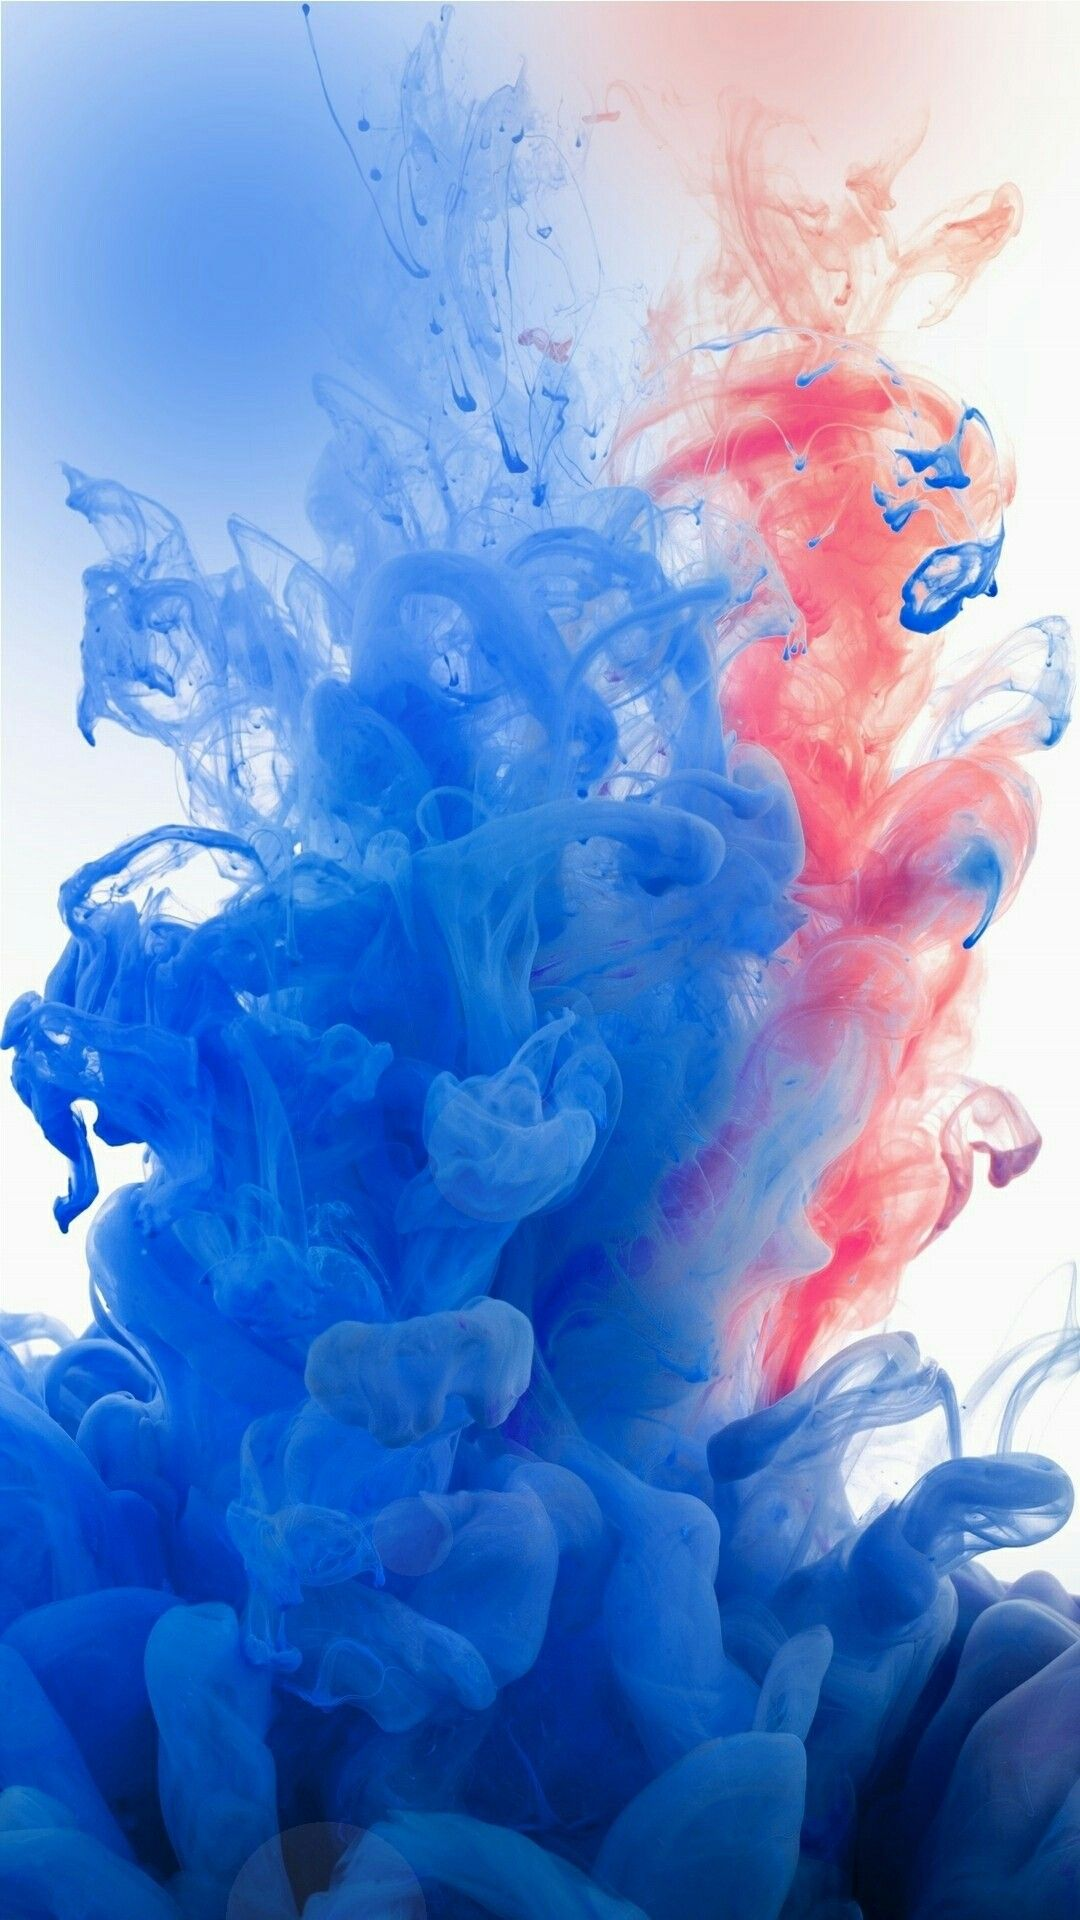 Pin By Ankur Tomar On Wallpapers In 2019 Smoke Wallpaper Iphone